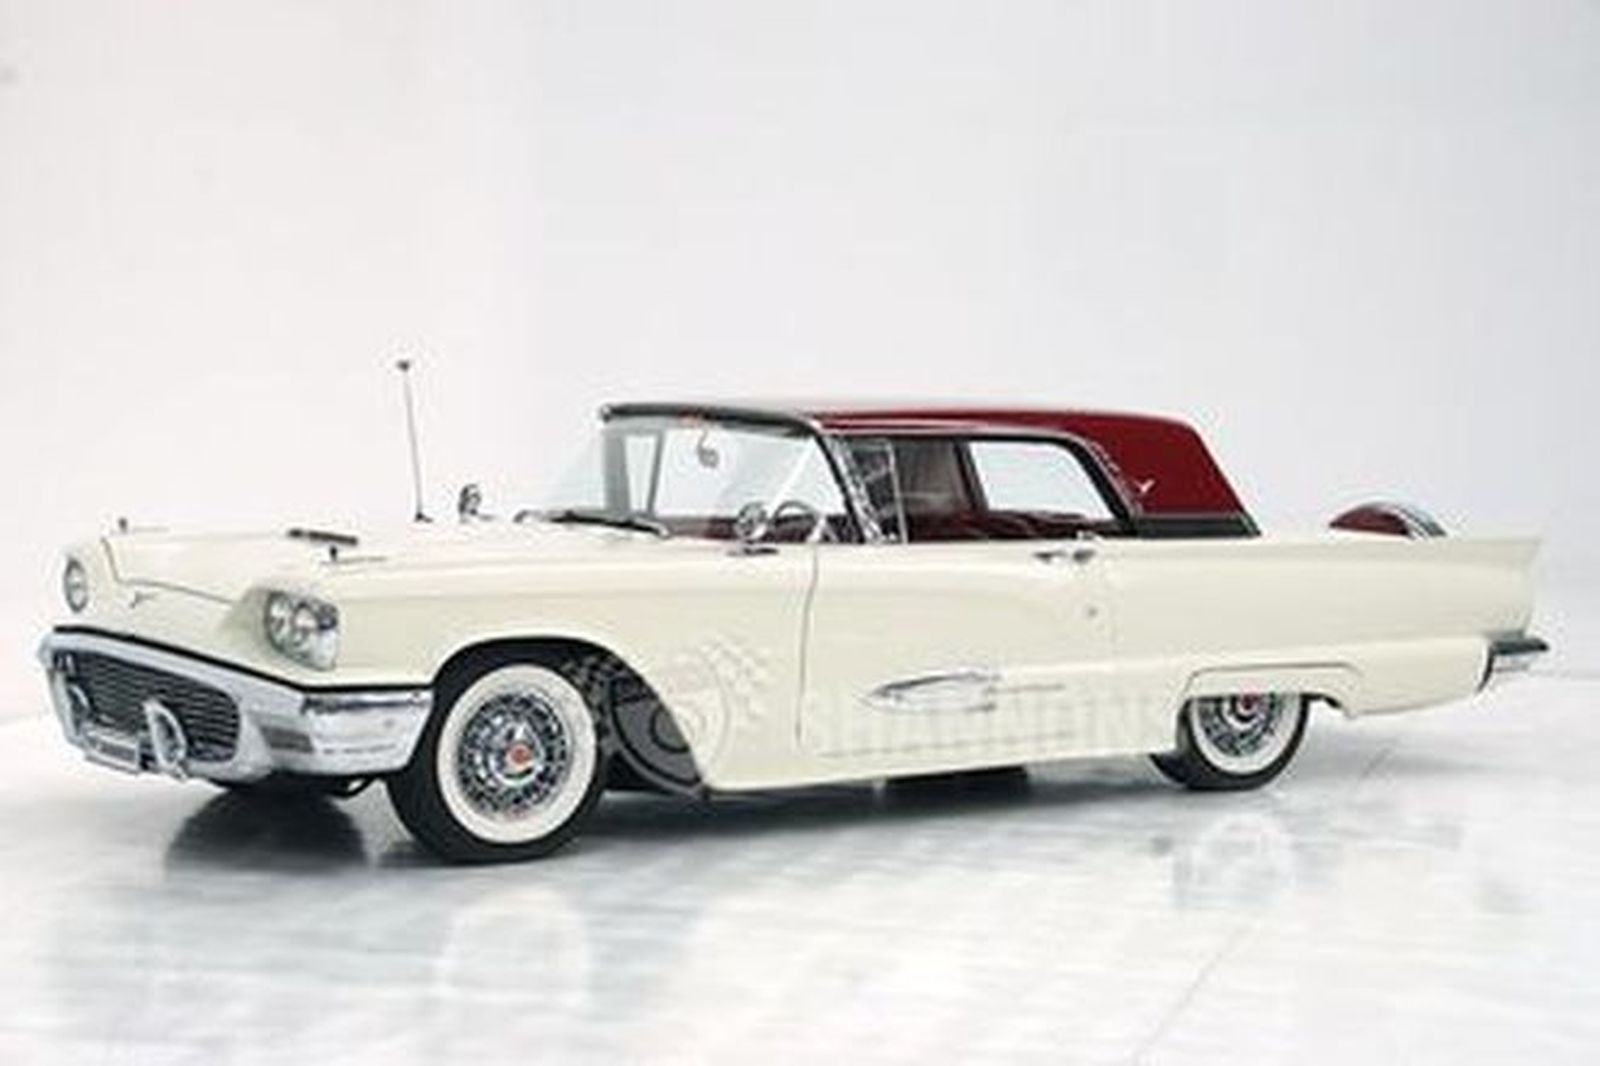 Ford Thunderbird 352 V8 Coupe (LHD)